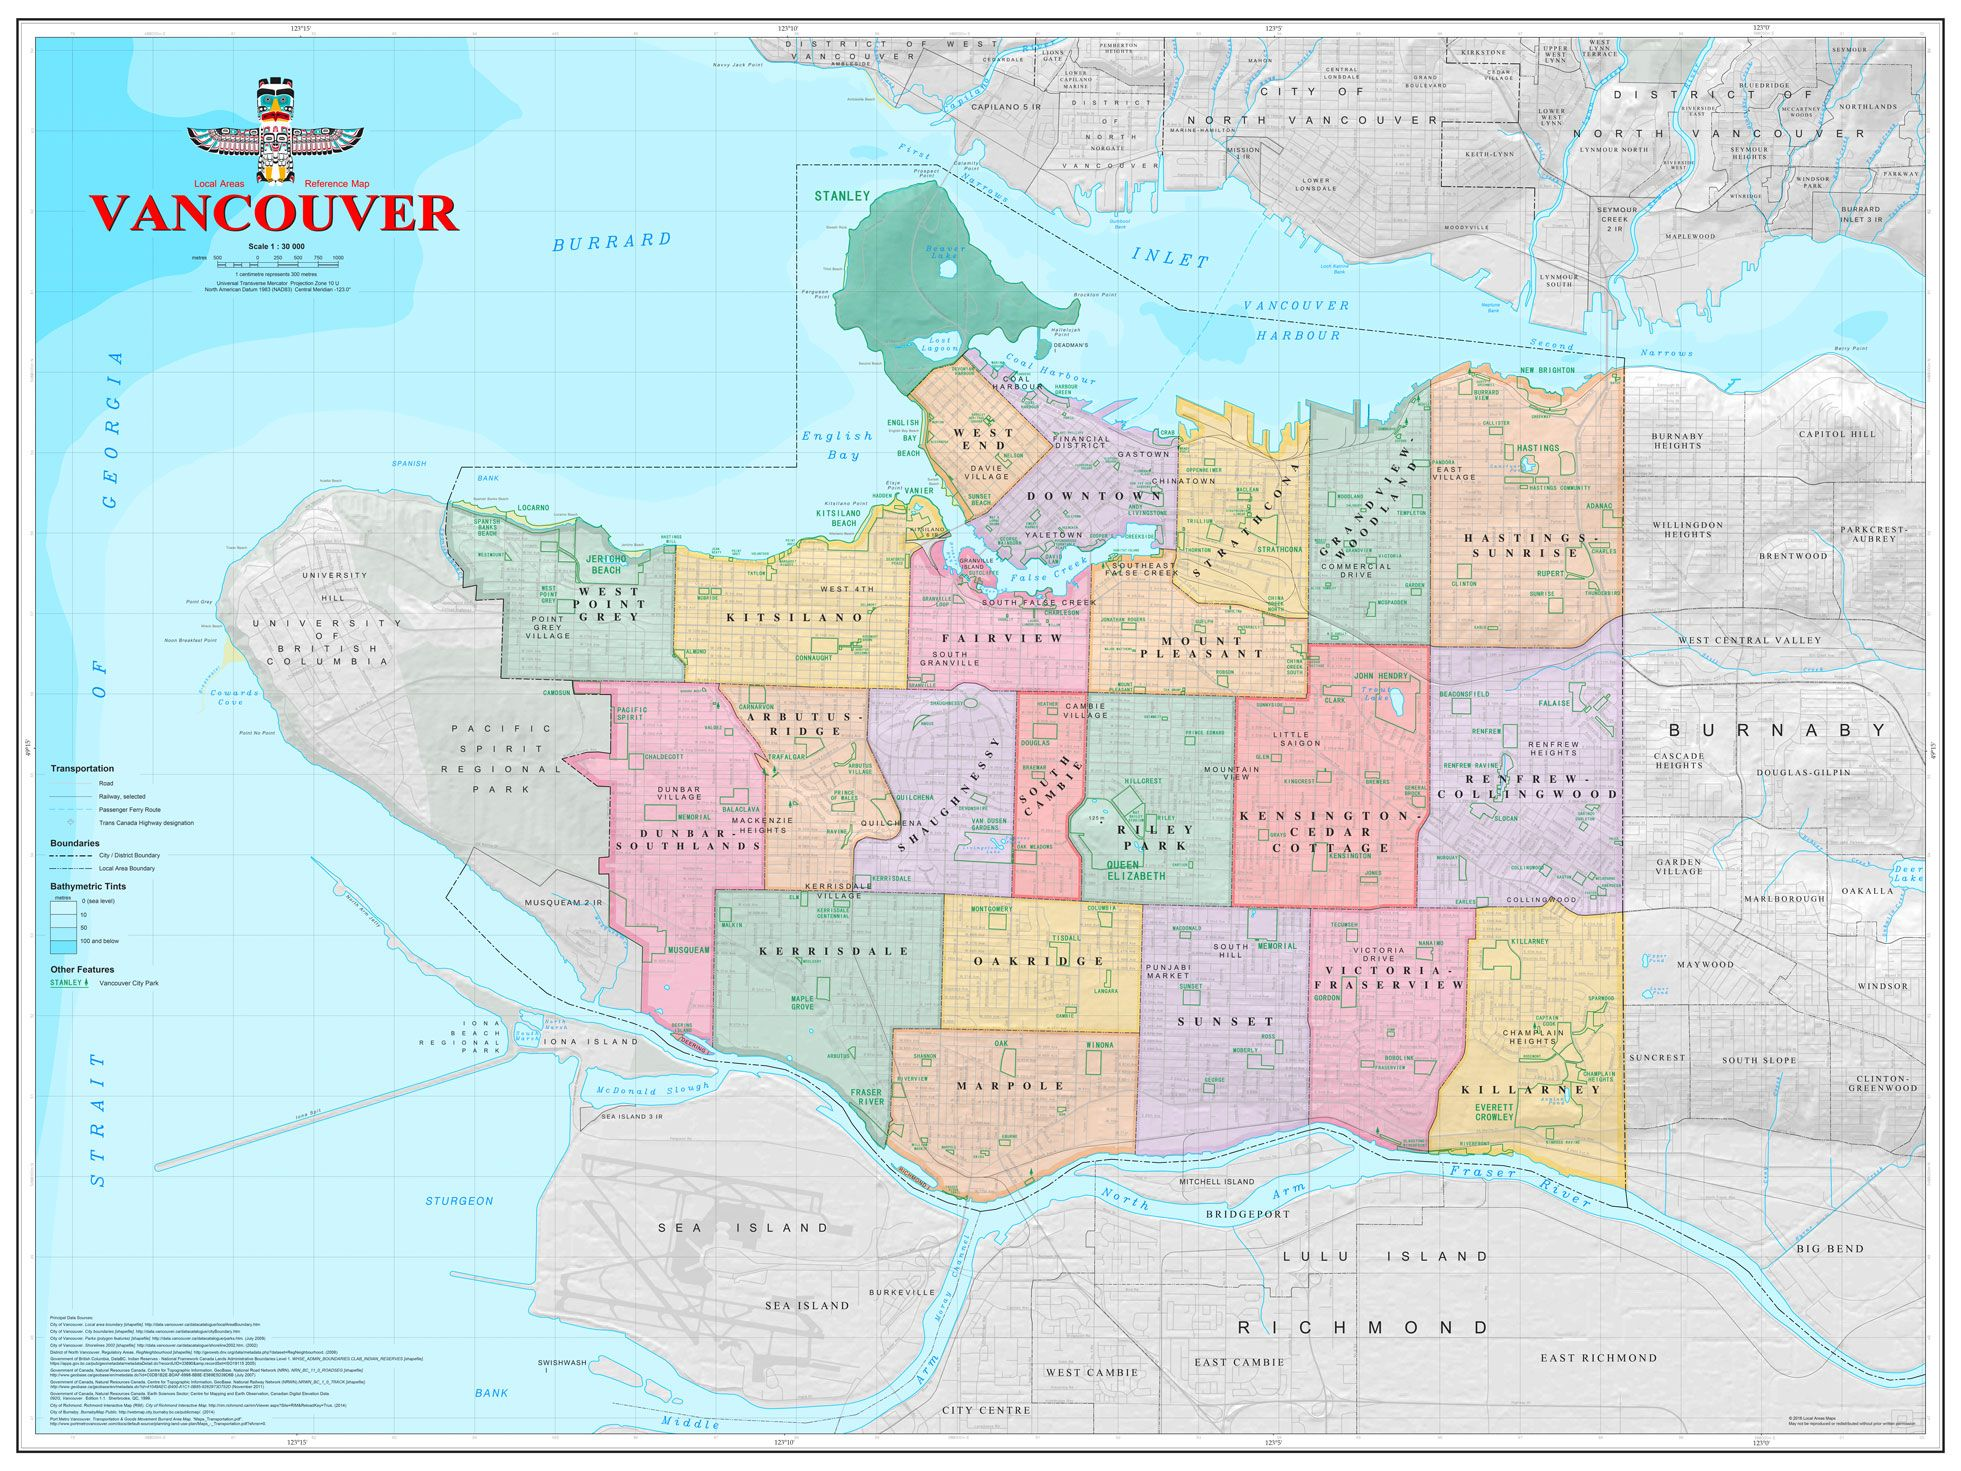 Neighbourhoods Of Vancouver British Columbia Canada MAPS - British columbia map